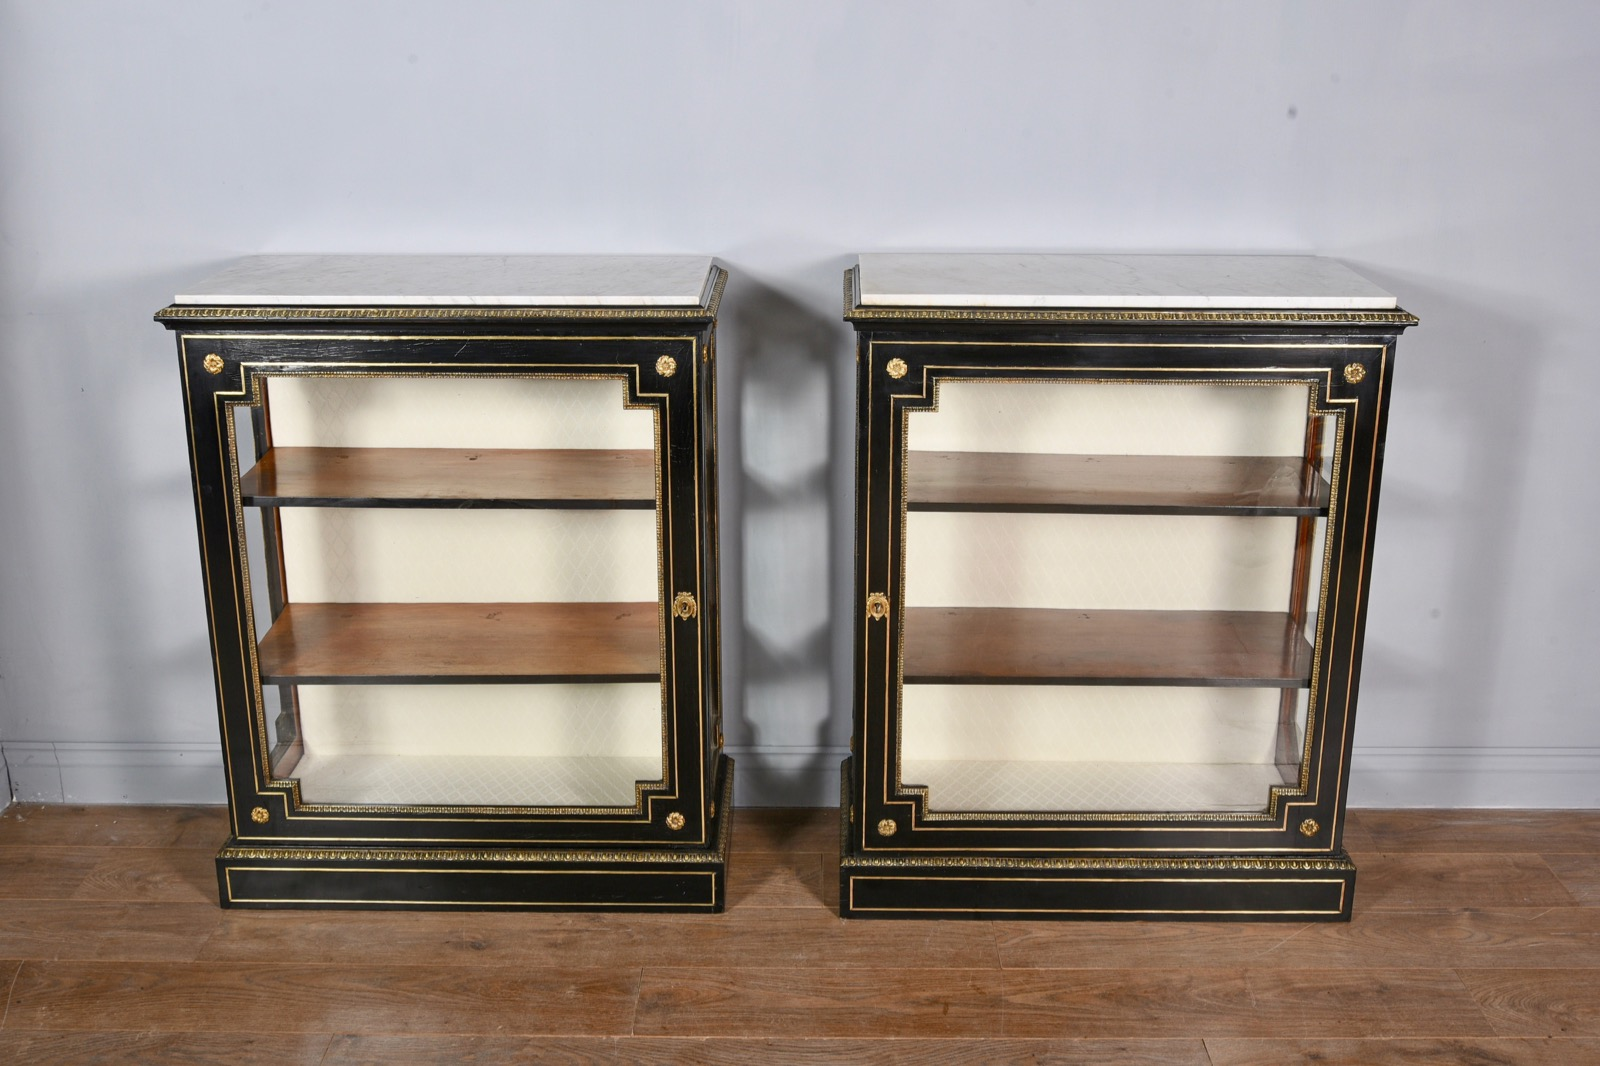 Pair of Victorian Brass Inlaid Pier Cabinet (1 of 1)